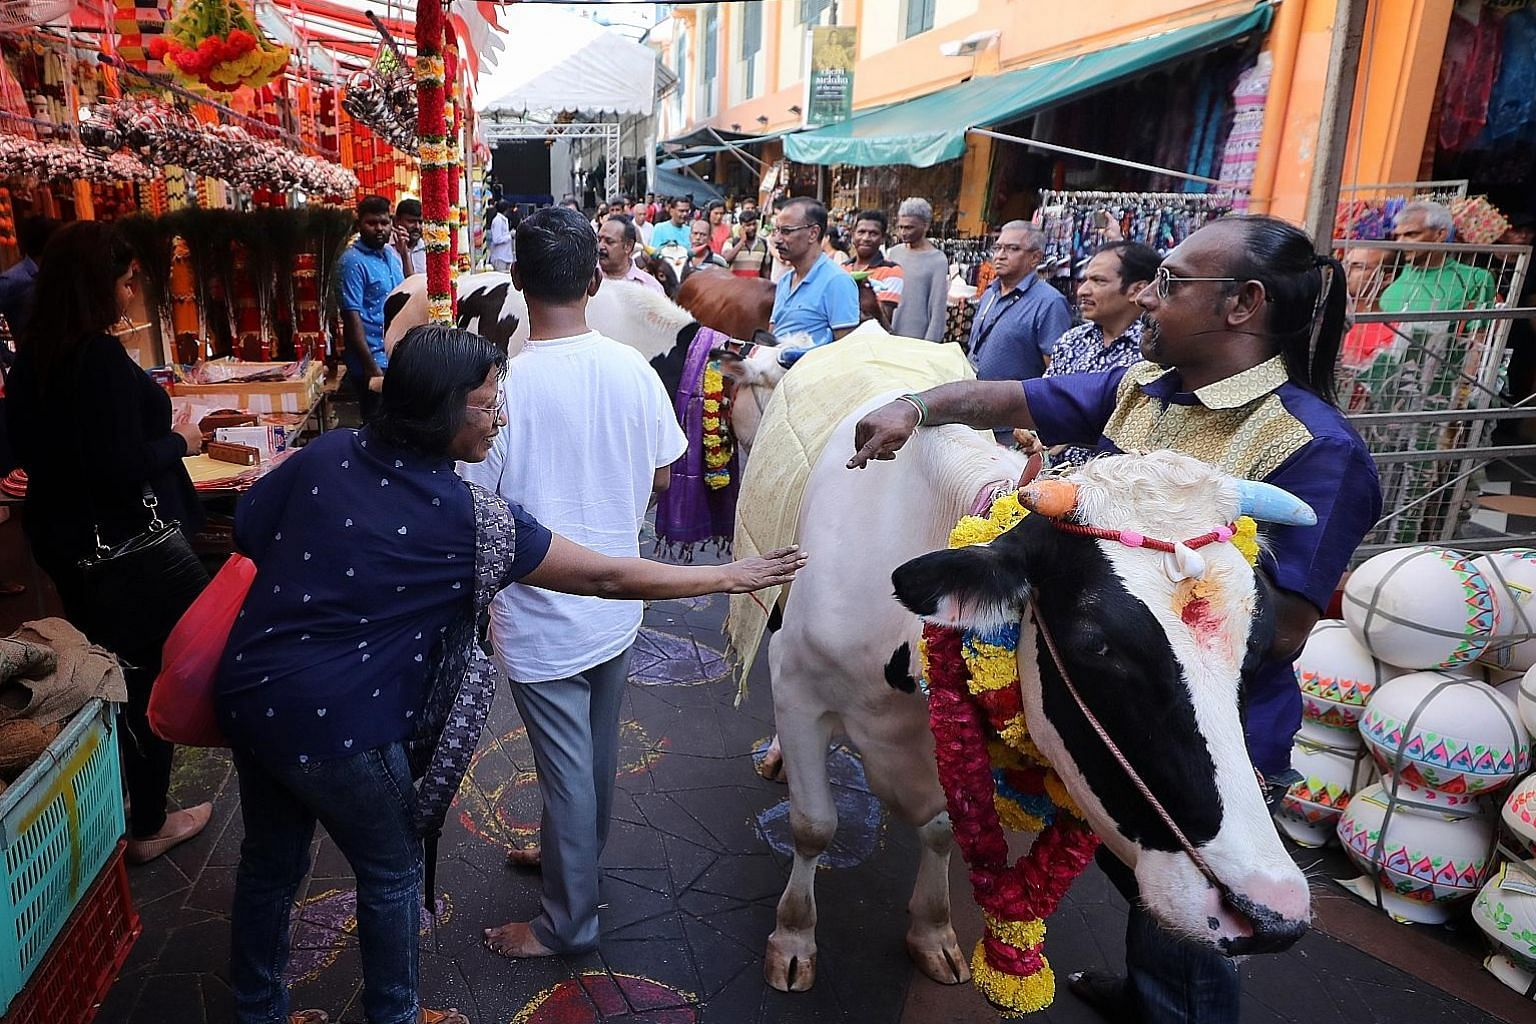 This decorated cow was part of an animal parade in Little India yesterday under the annual Pongal festival.